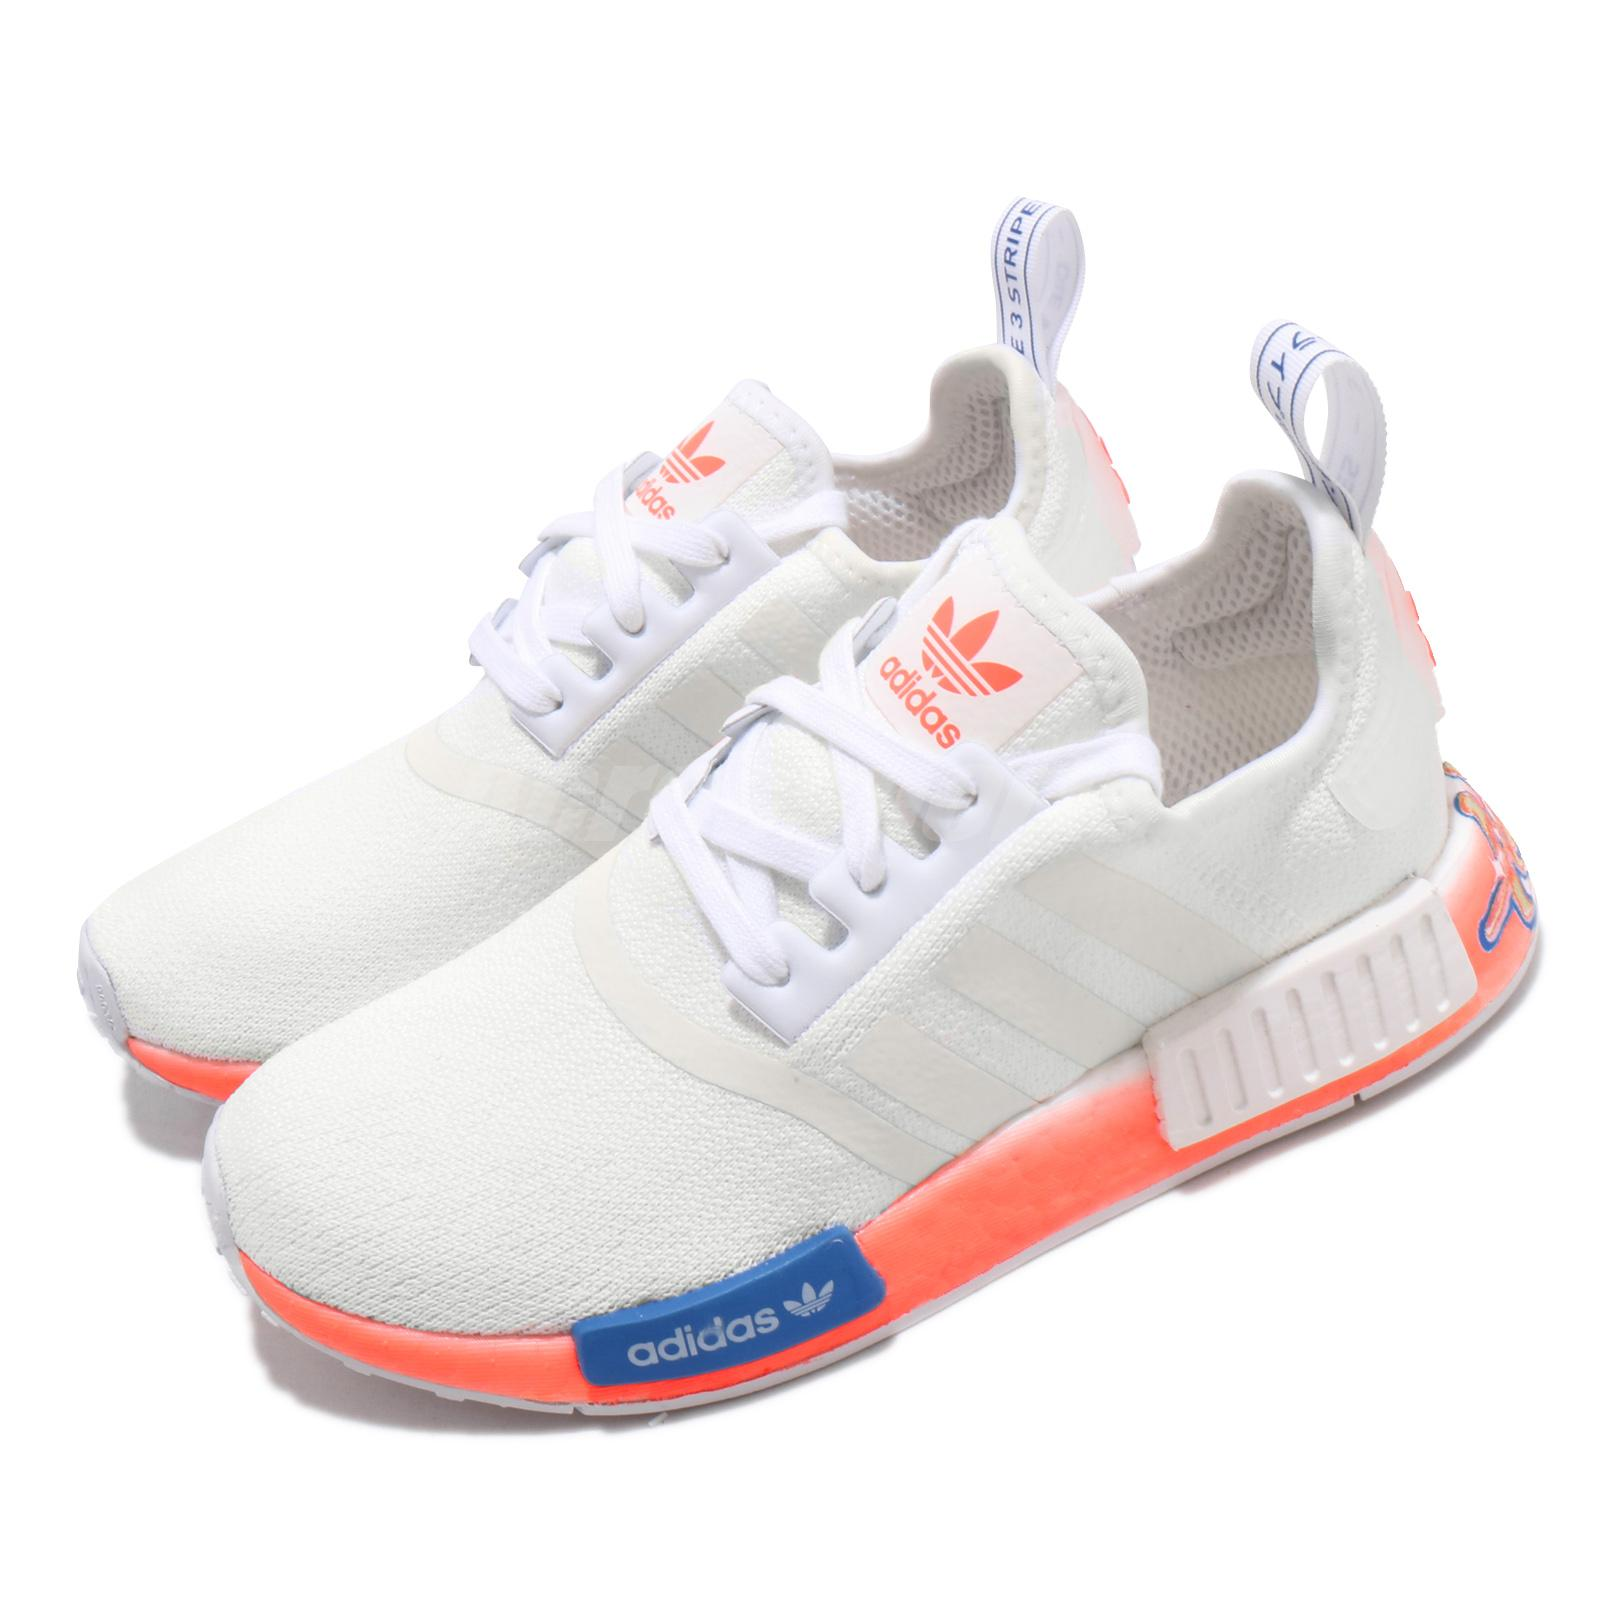 Adidas Nmd R1 White Orange Graffiti Stlt Primeknit Men Women Casual Shoes Fv7852 Ebay